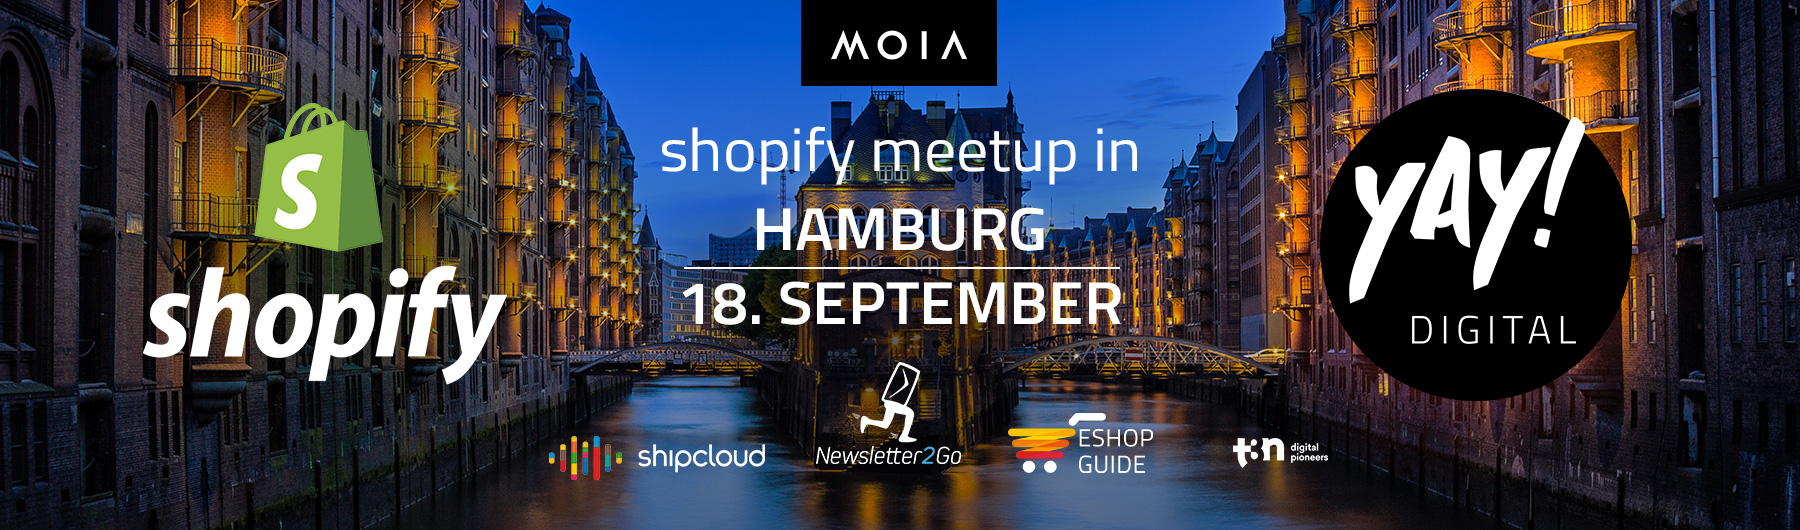 Shopify Meetup Hamburg